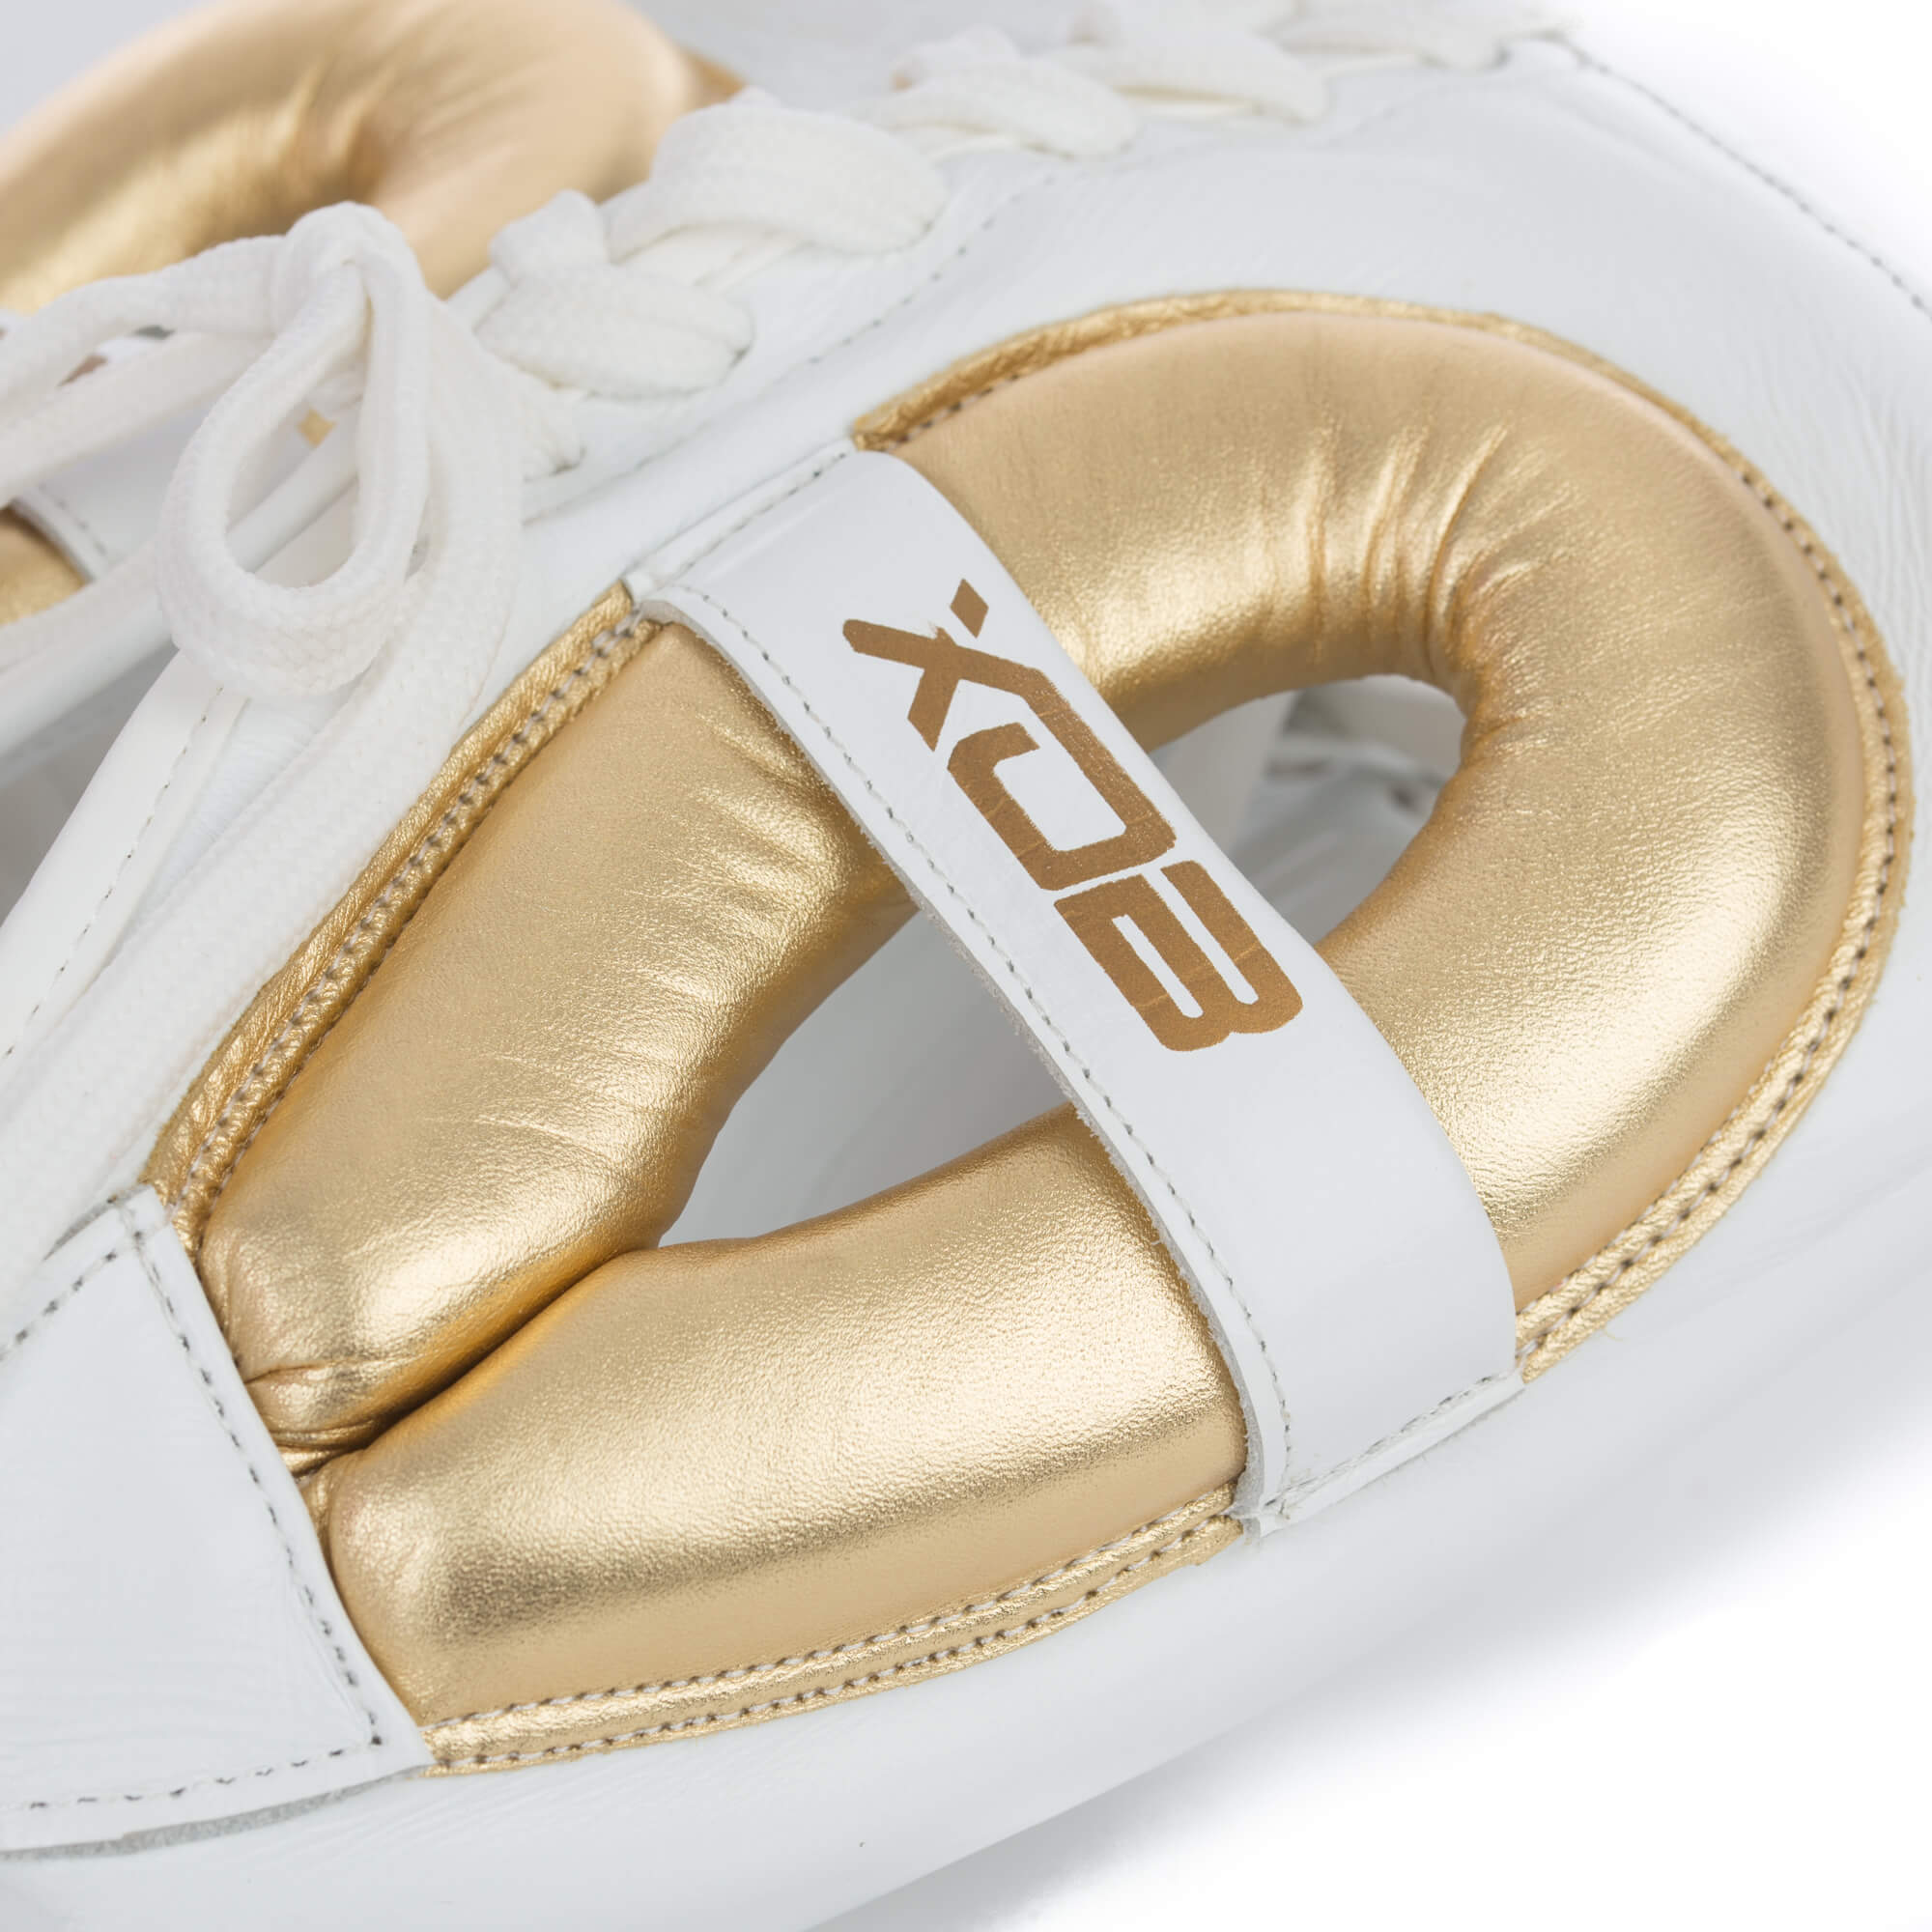 XOB Original Serie 200 Sparring Headgear - White & Gold